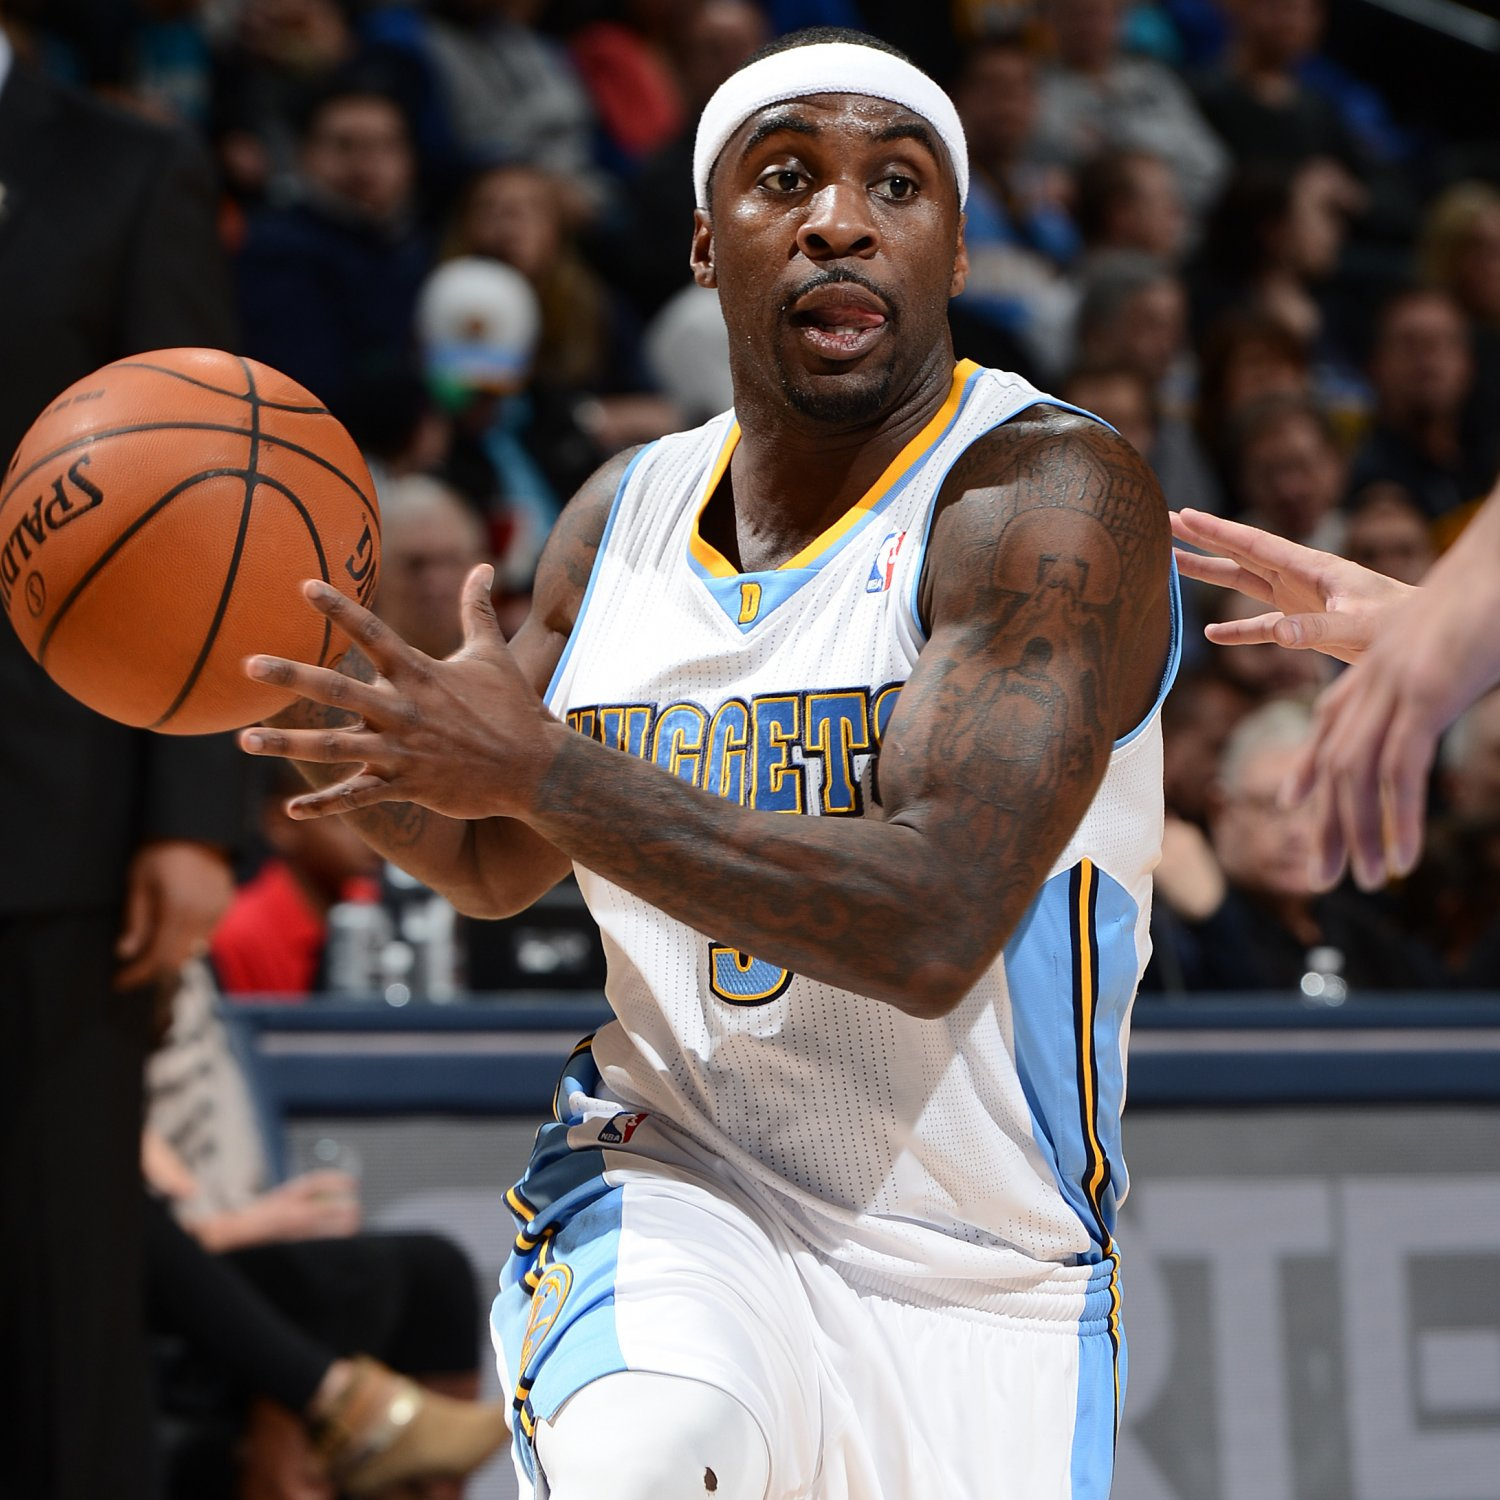 Nba Picks Nuggets And Lakers Game 7 Odds And Betting: Ty Lawson Breaks Jodie Meeks' Ankles During Game Vs